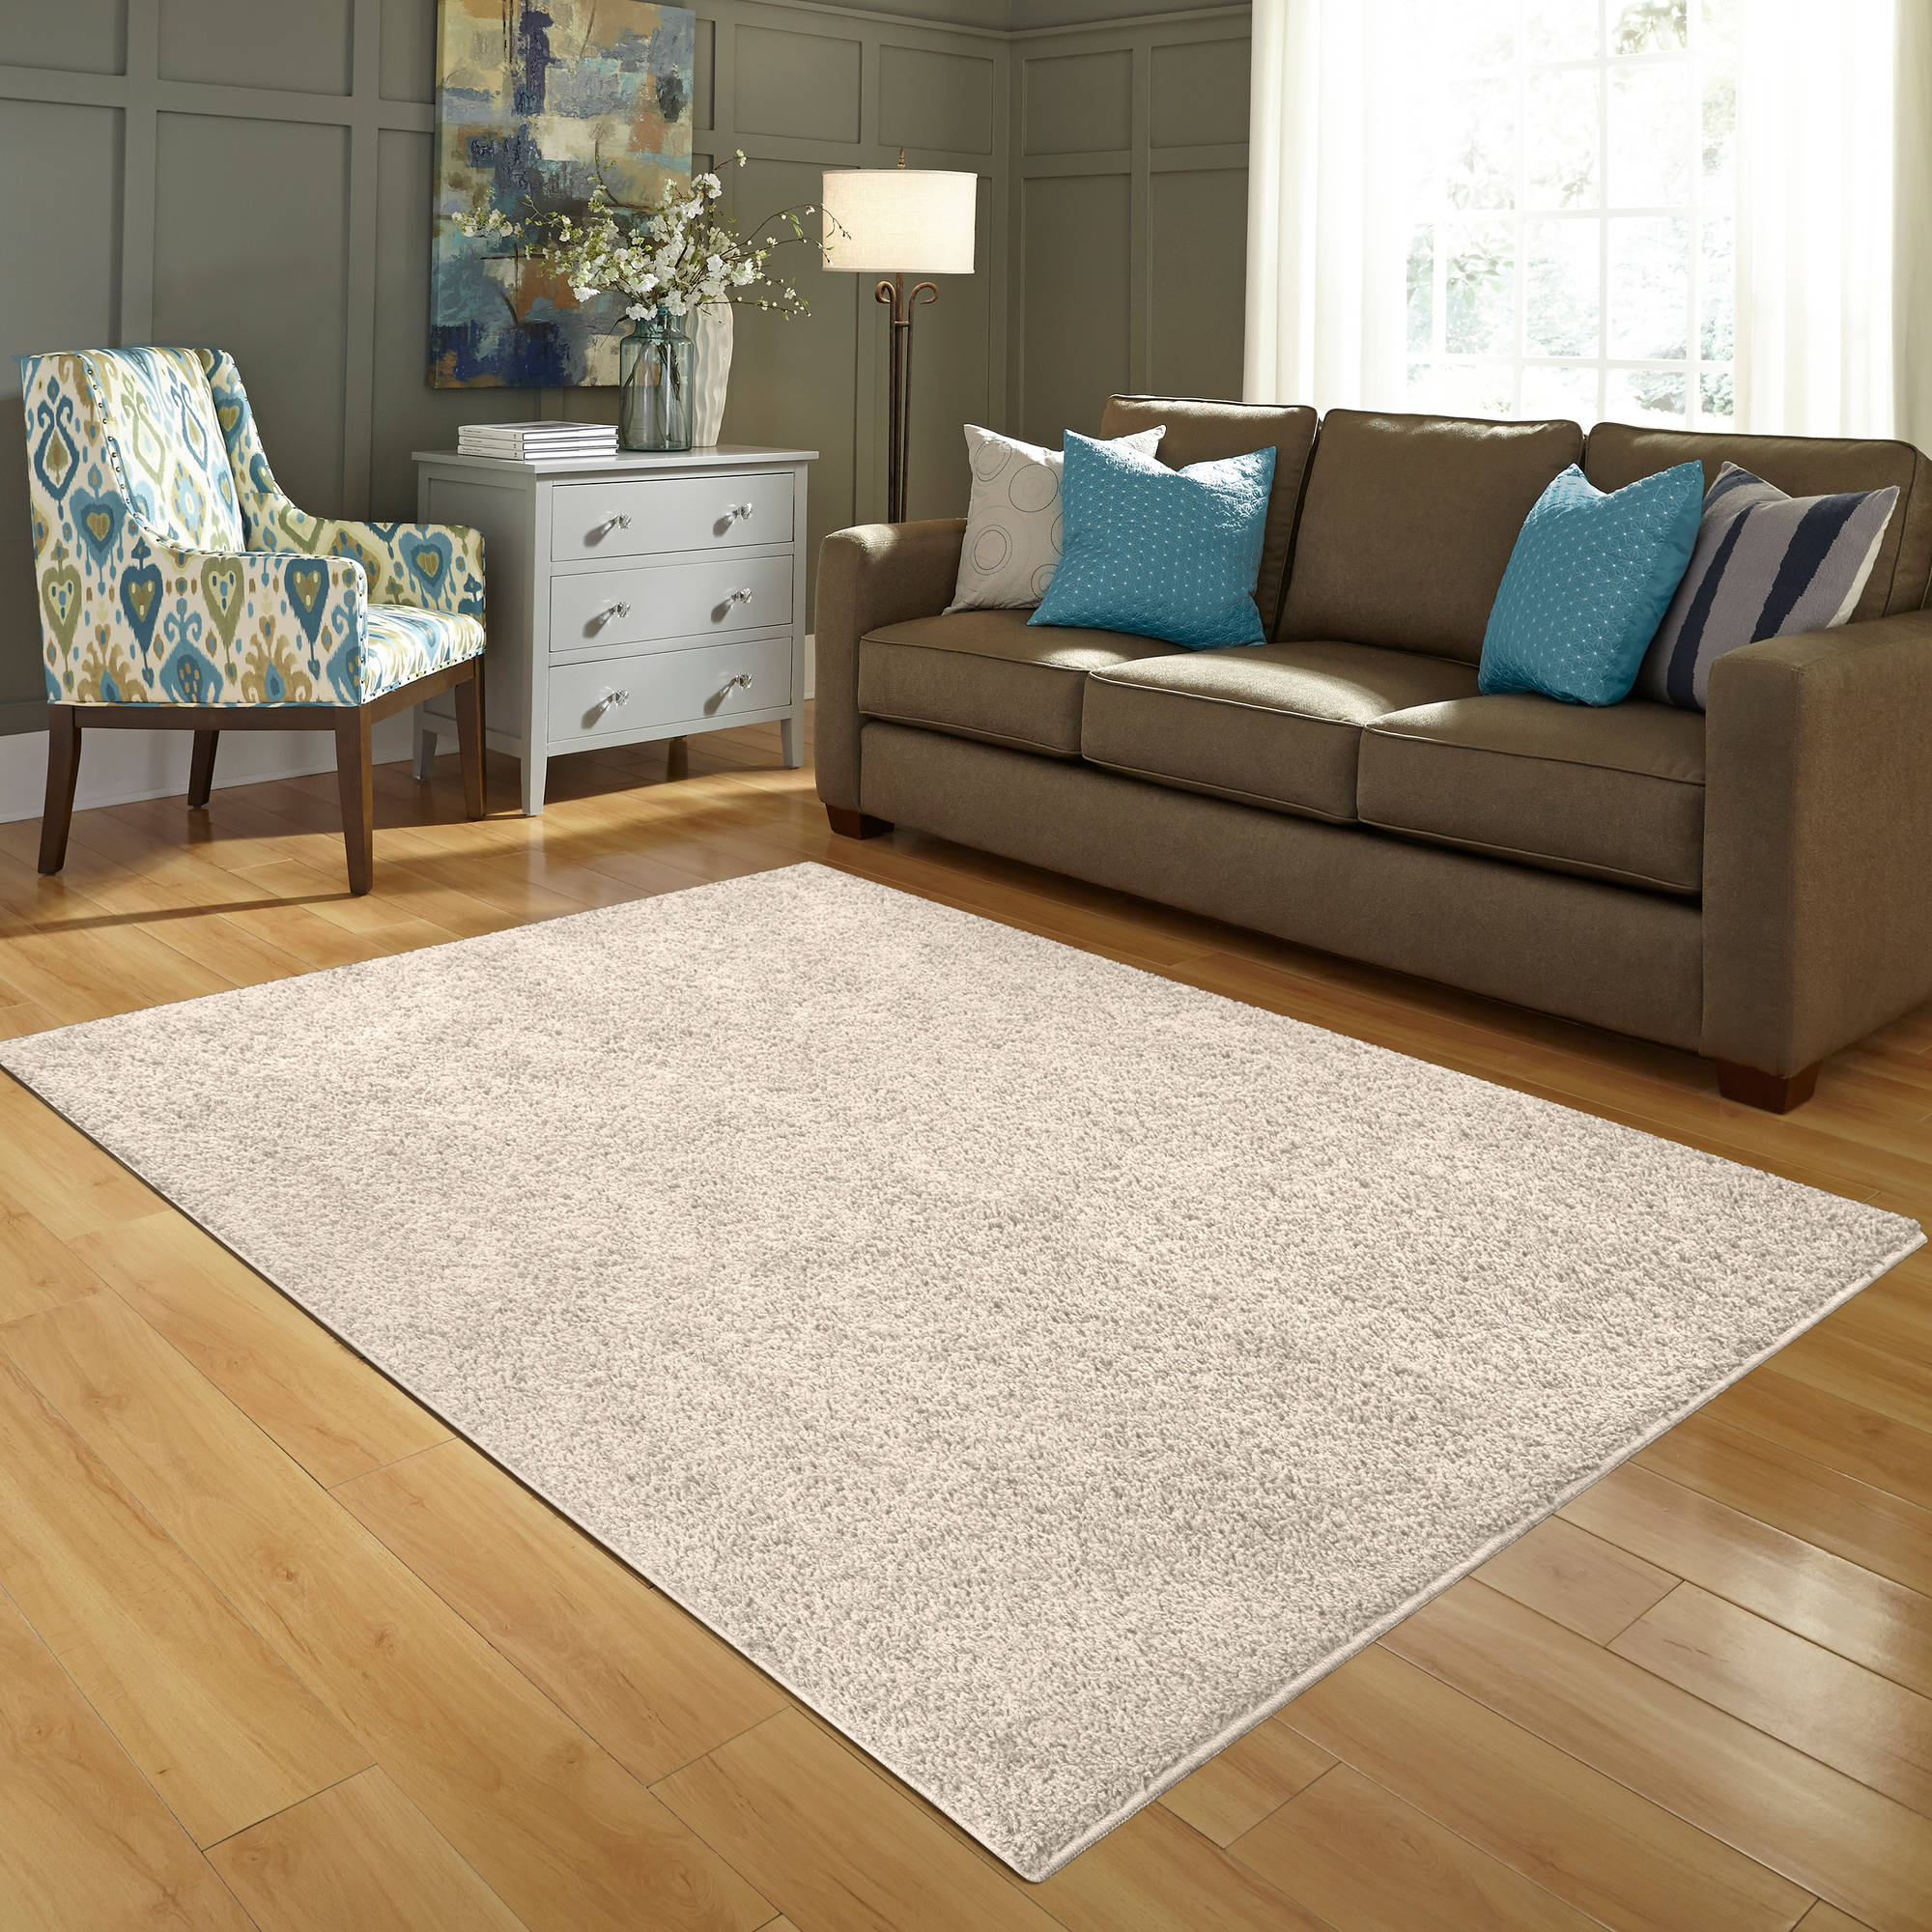 mainstays olefin shag area rug in multiple sizes and colors